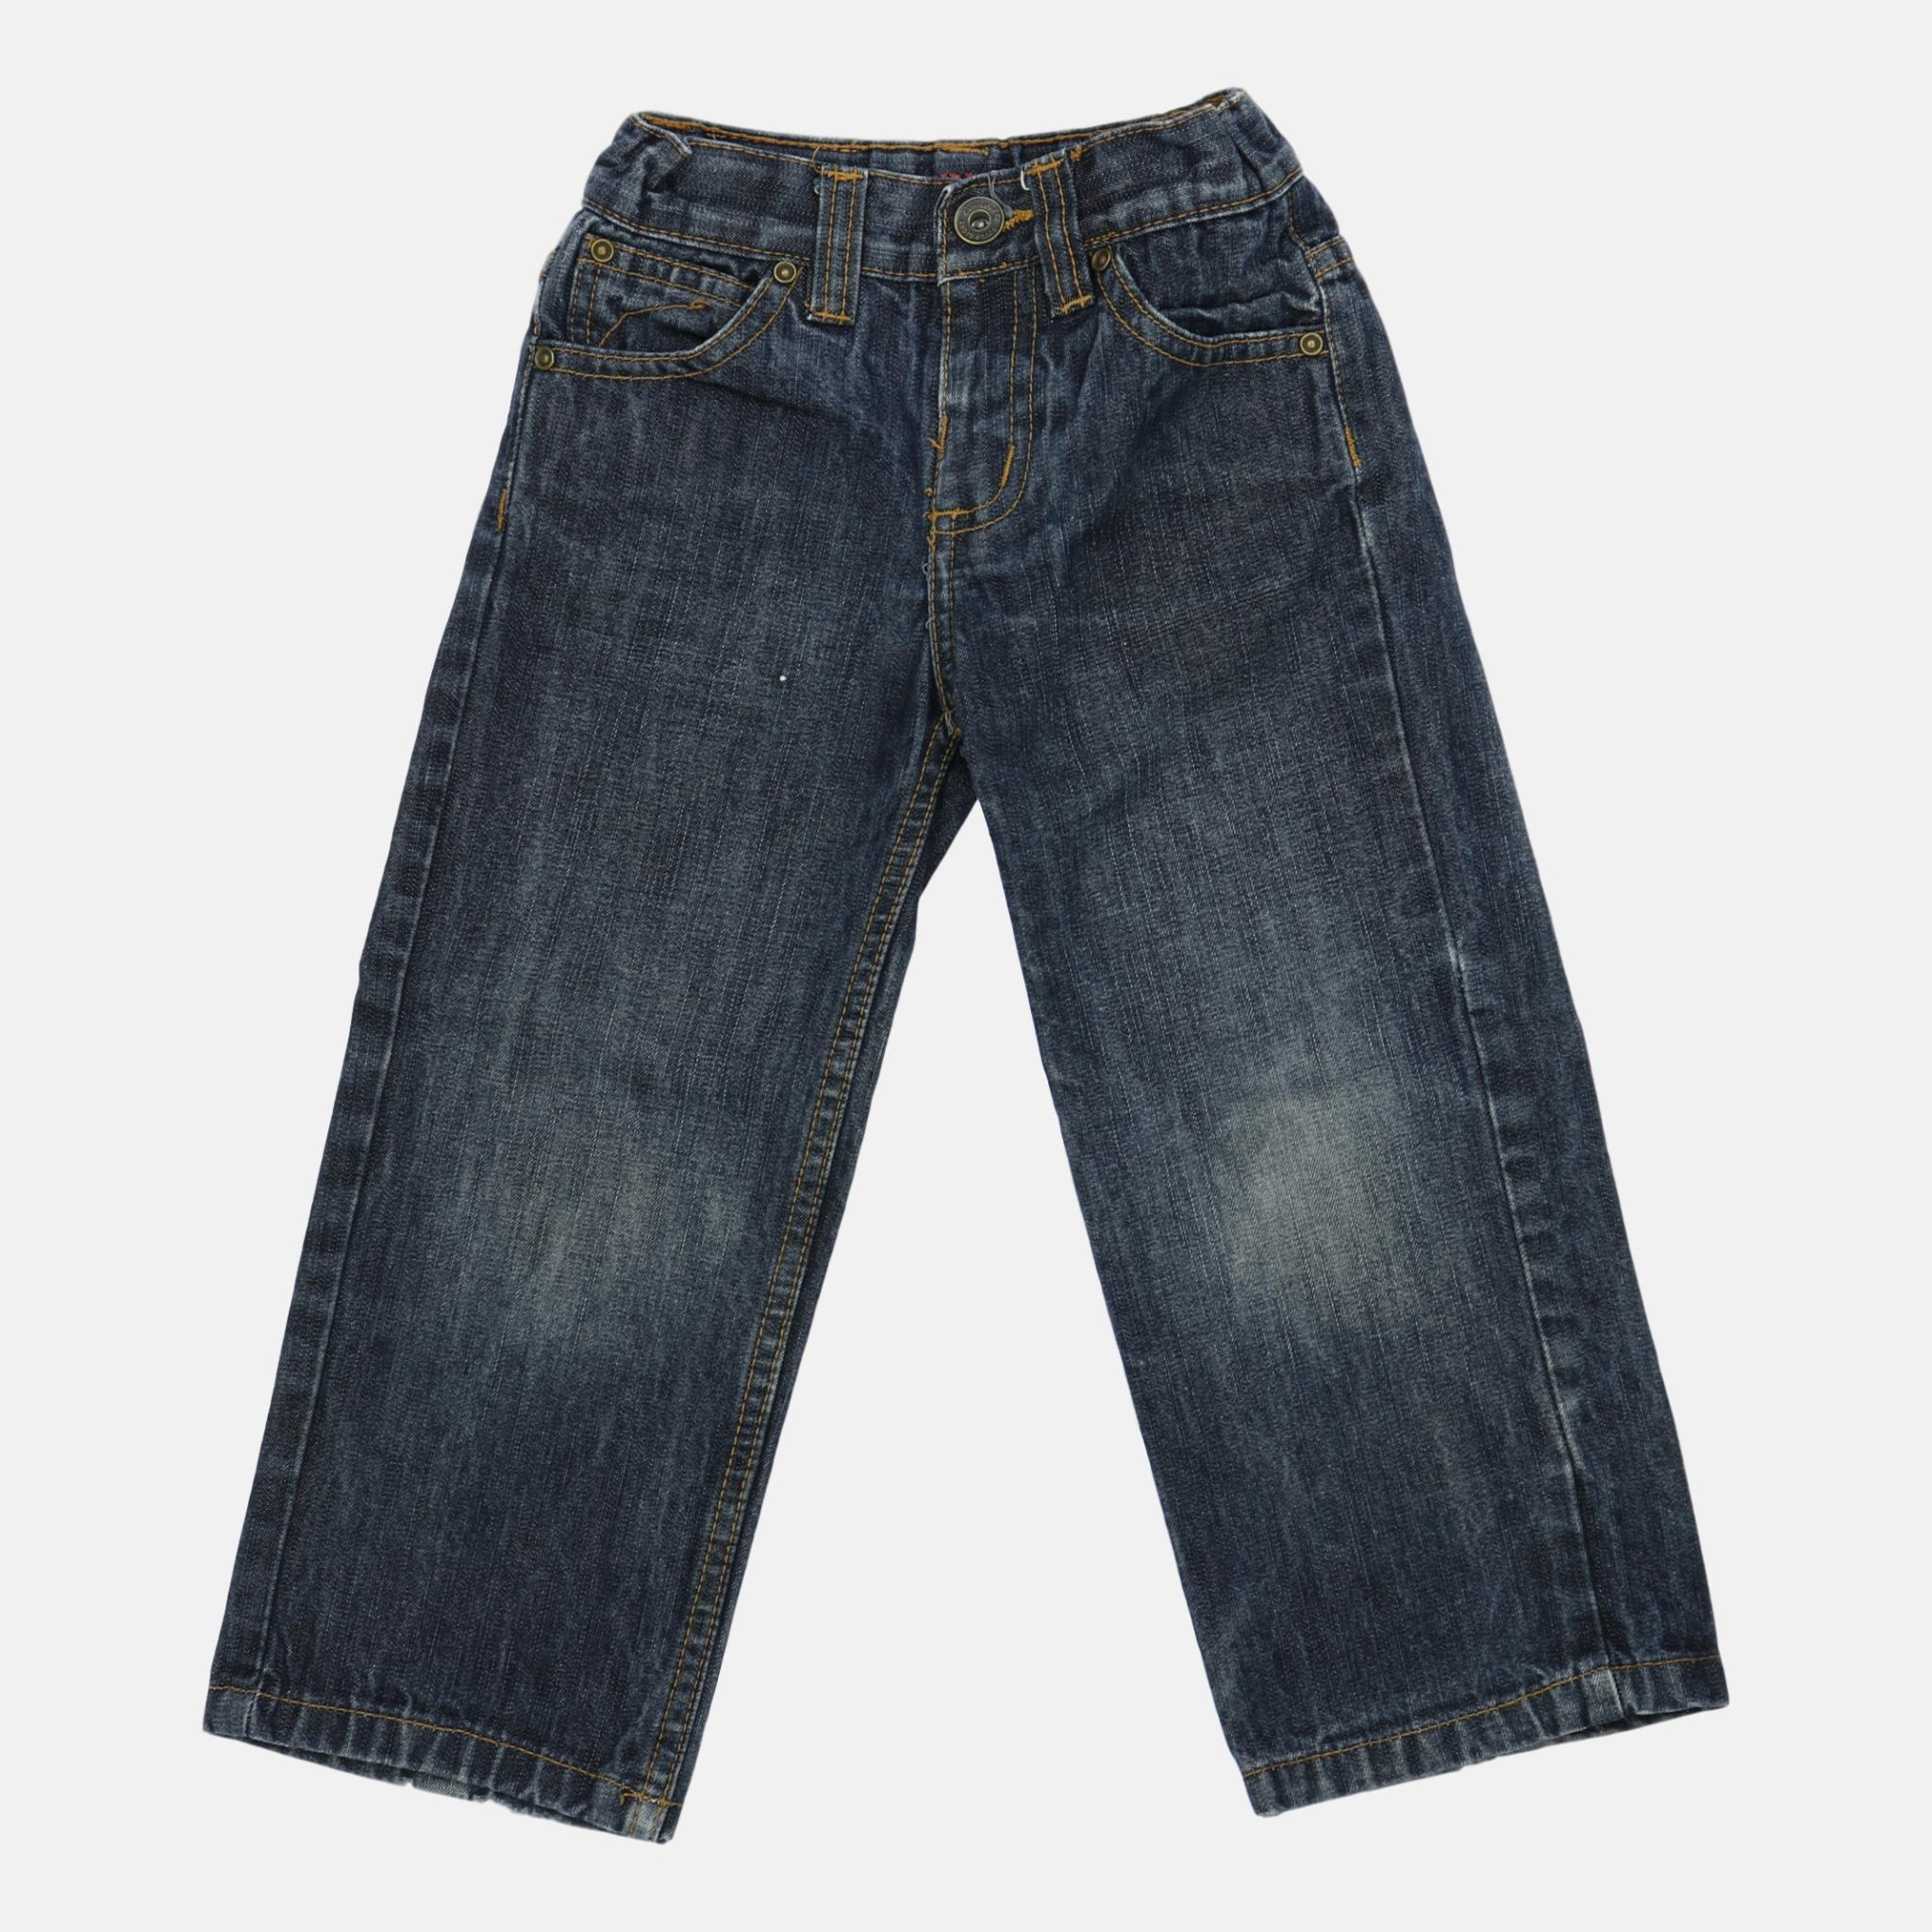 Jeans, 2-3 Years